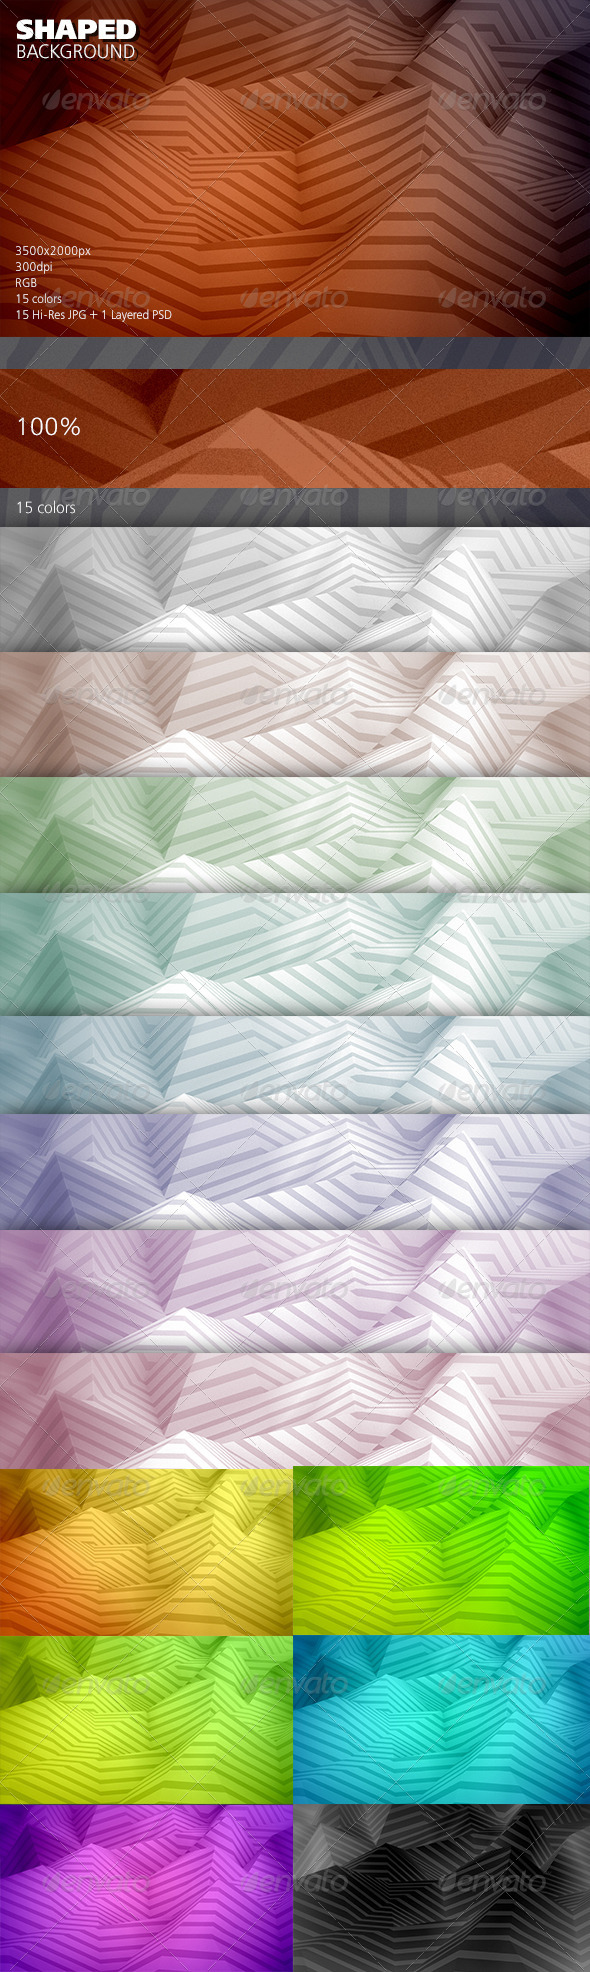 Shaped Background - Abstract Backgrounds